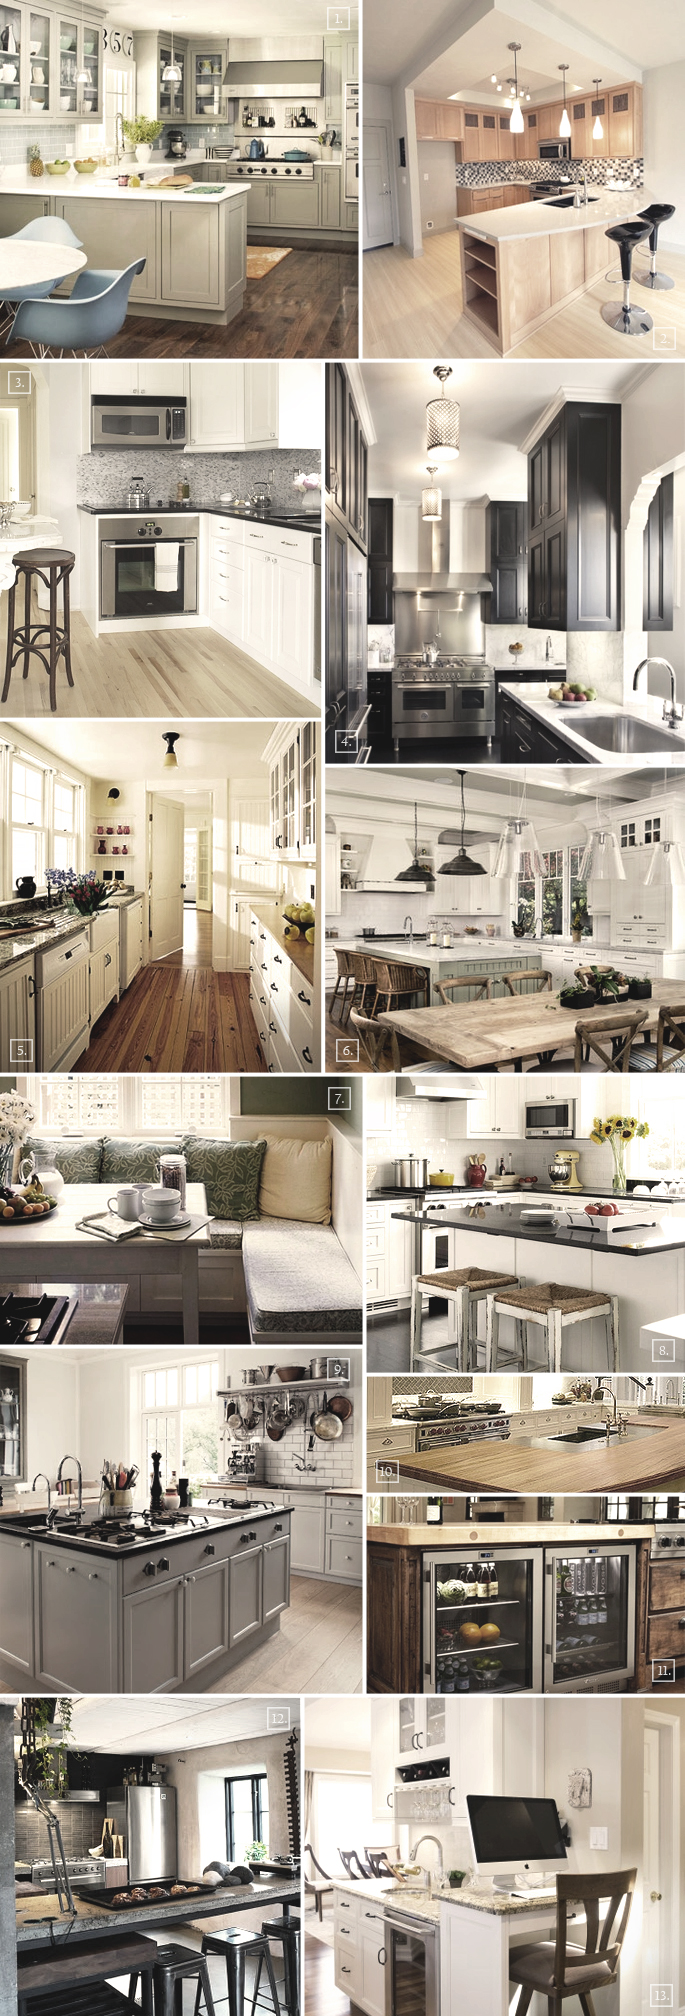 Kitchen Layout Ideas and Designs